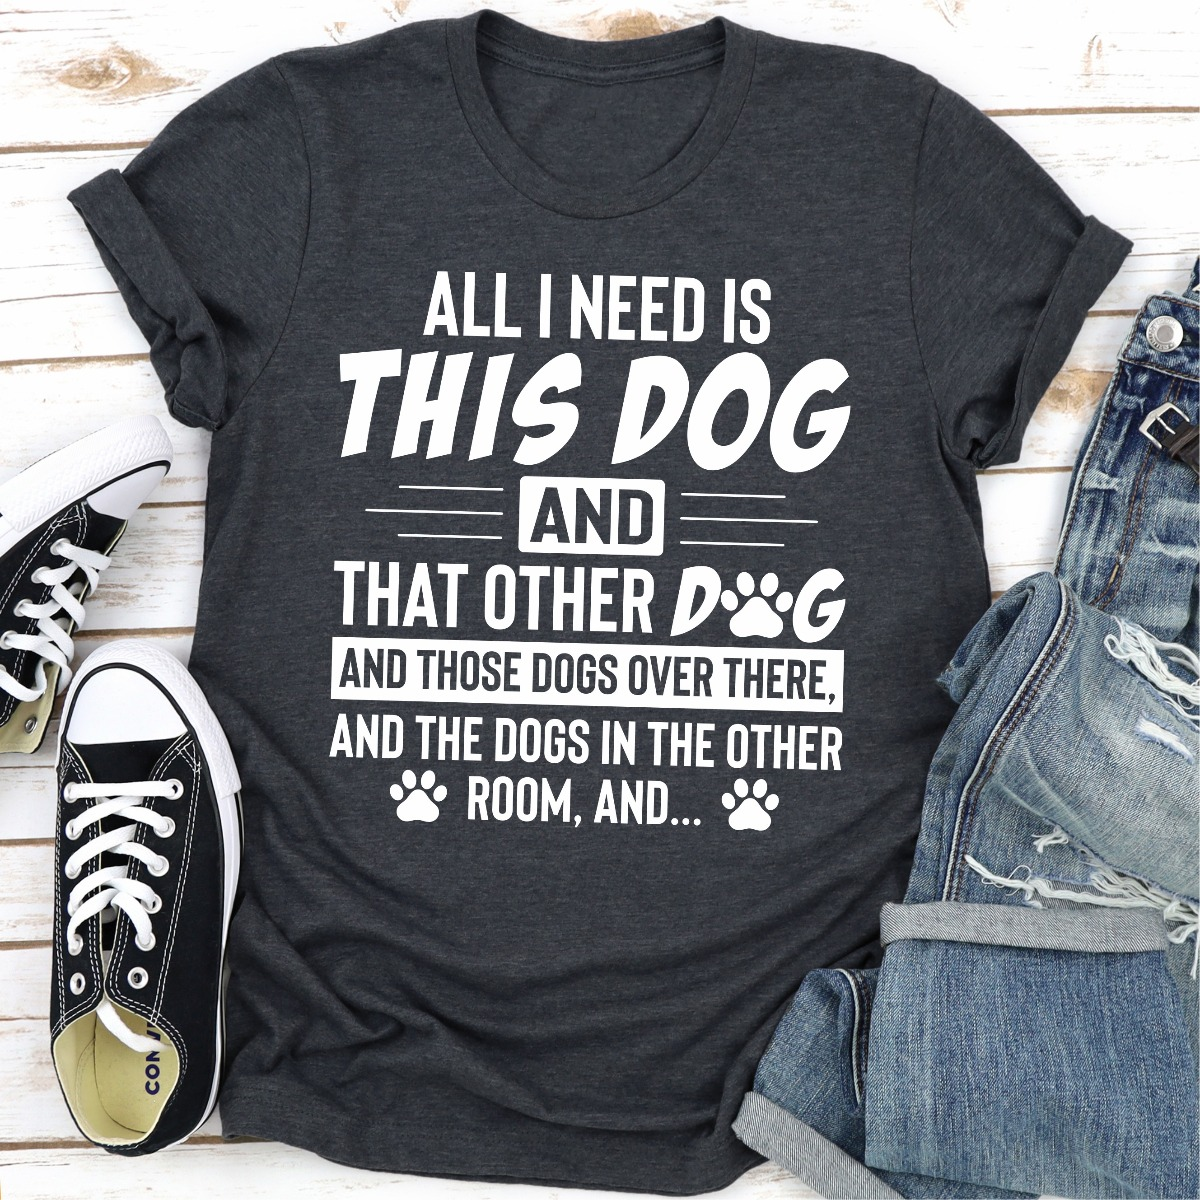 All I Need Is This Dog And That Other Dog (Dark Heather / S)